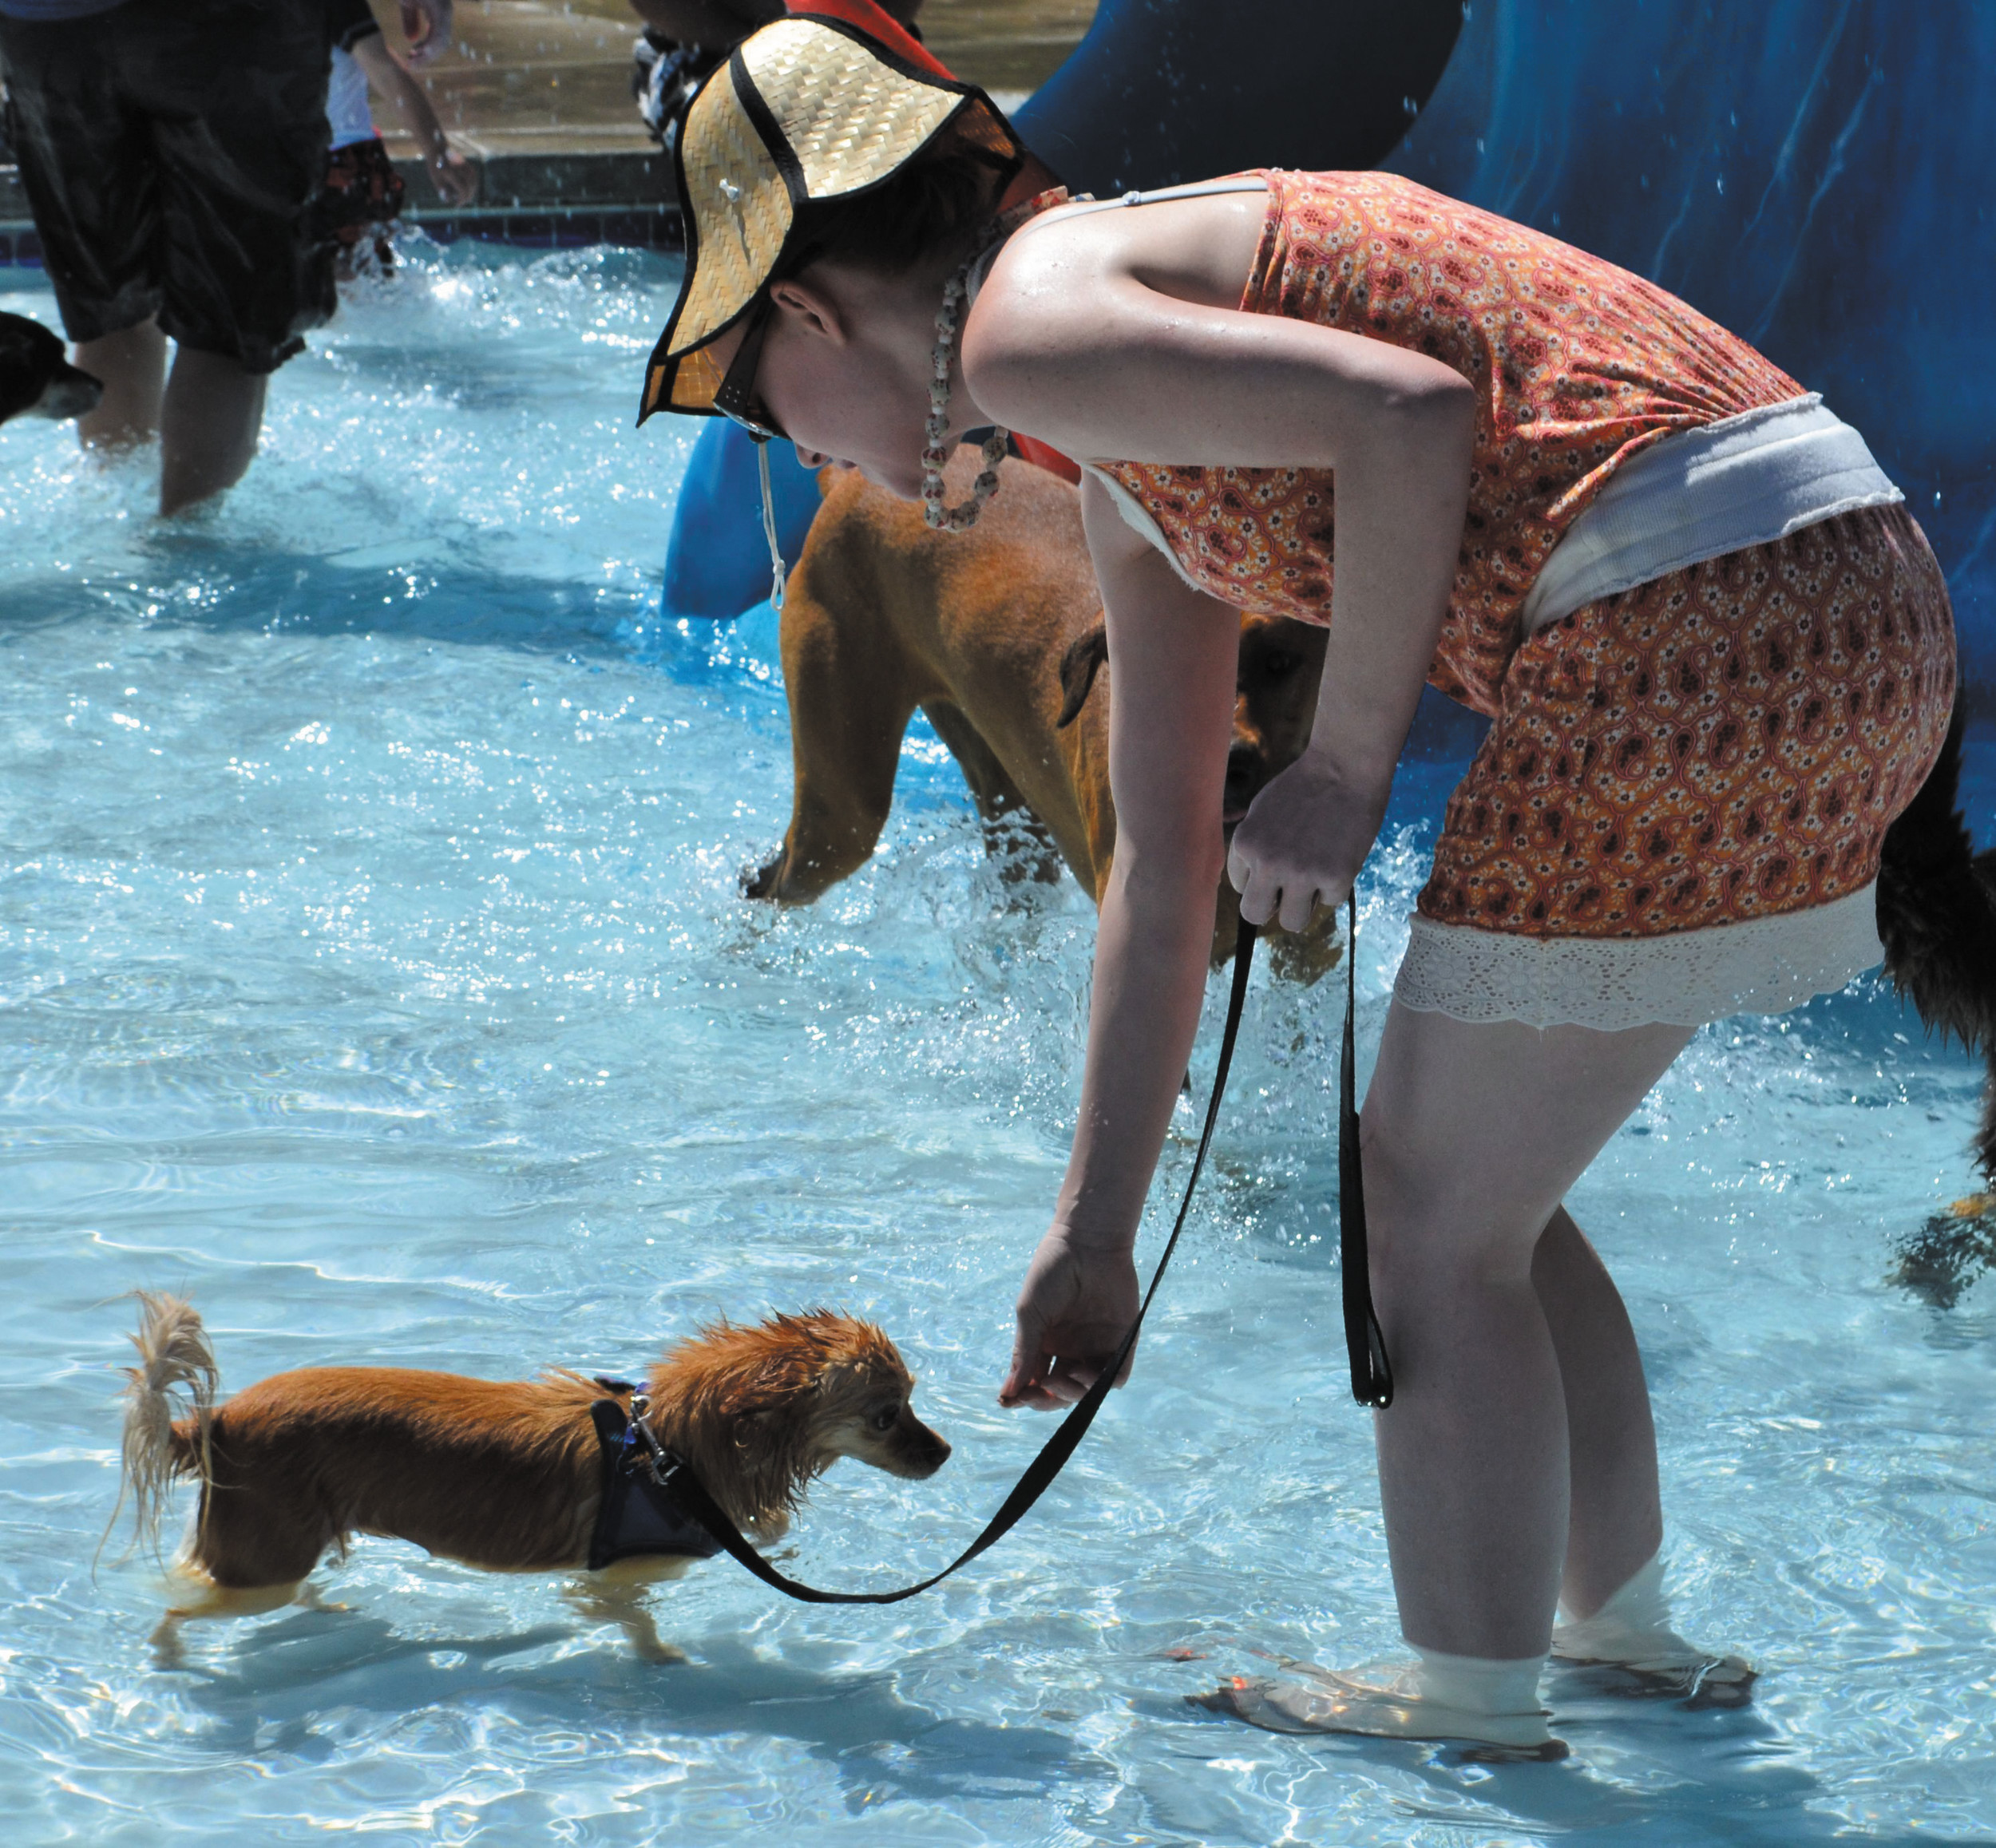 Wading through the shallow end, 2-year old, Rainbow Sparkle Pants, slowly begins to enjoy swimming with her owner.